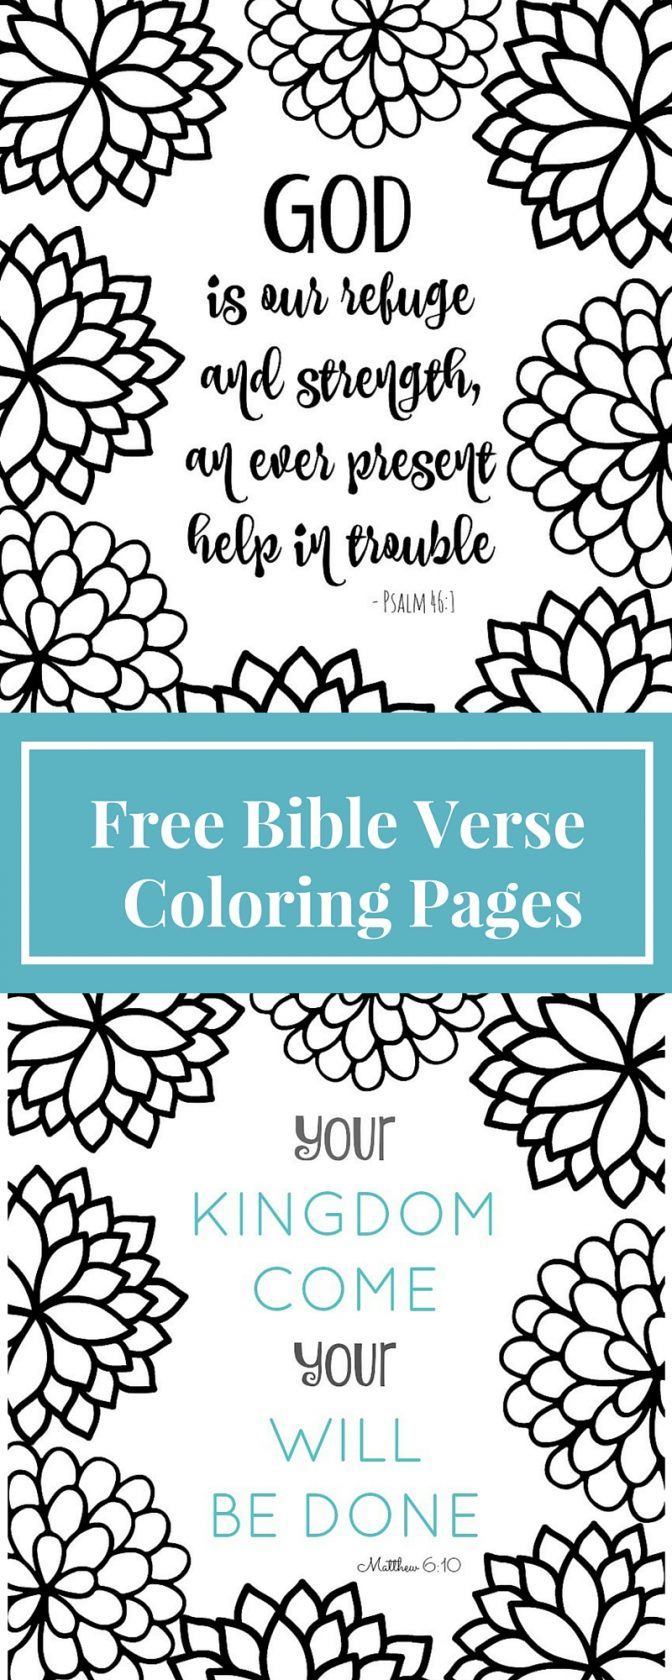 Bible Coloring Pages For Kids Coloring Pages 44 Phenomenal Bible Coloring Pages Image